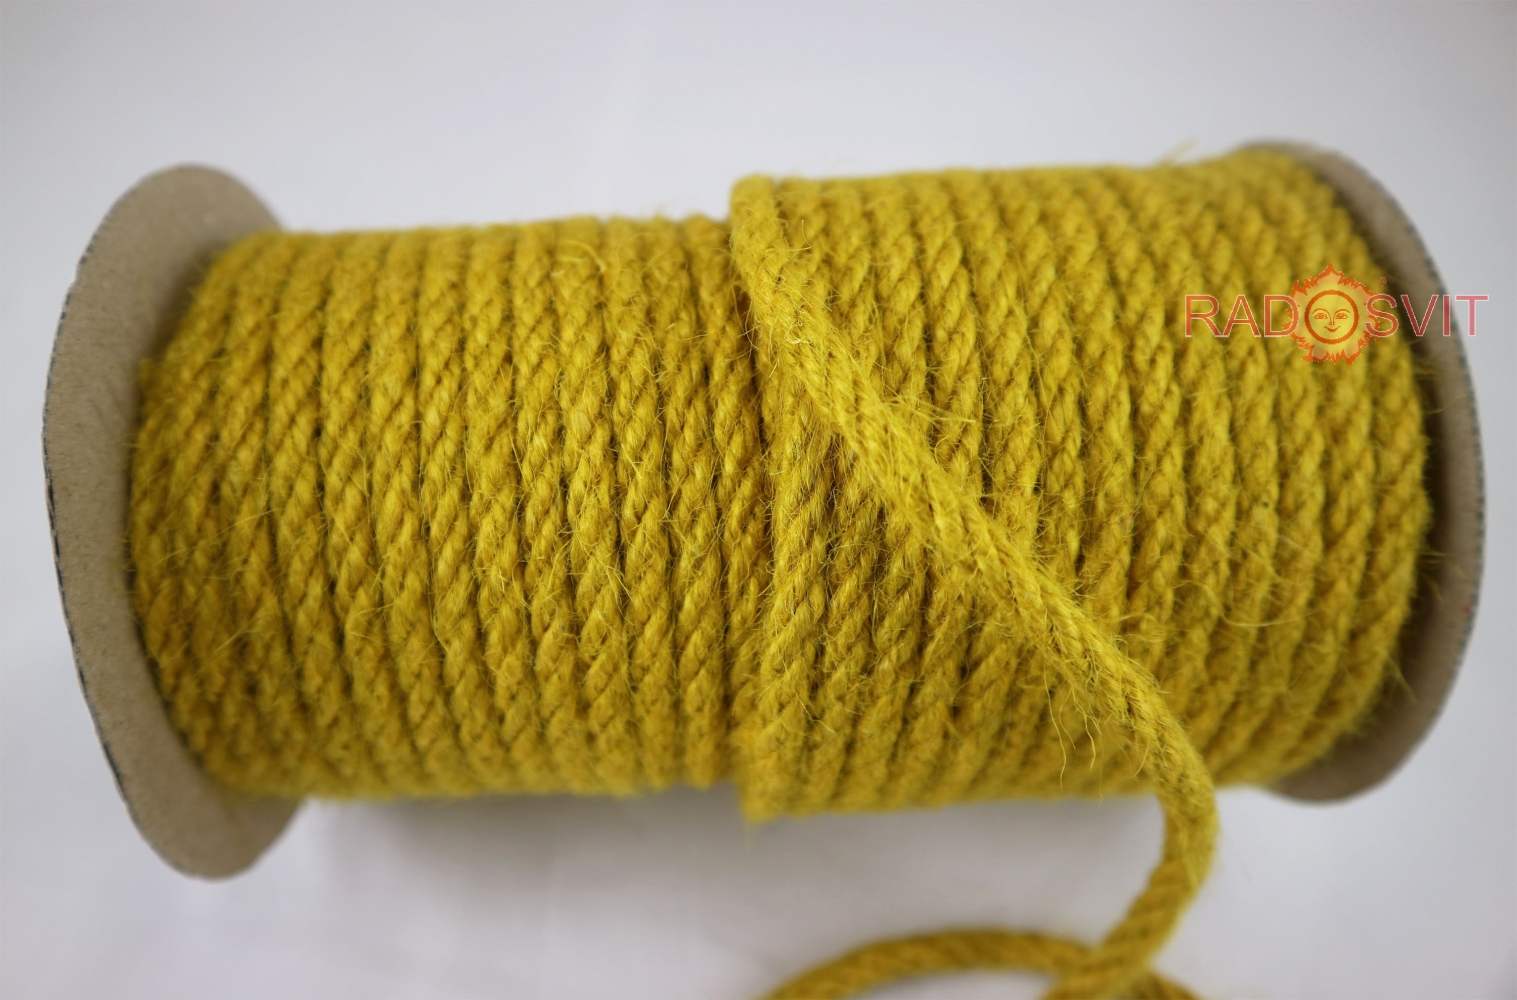 Jute rope in yellow color, diameter 6 mm, 25 meters - 2